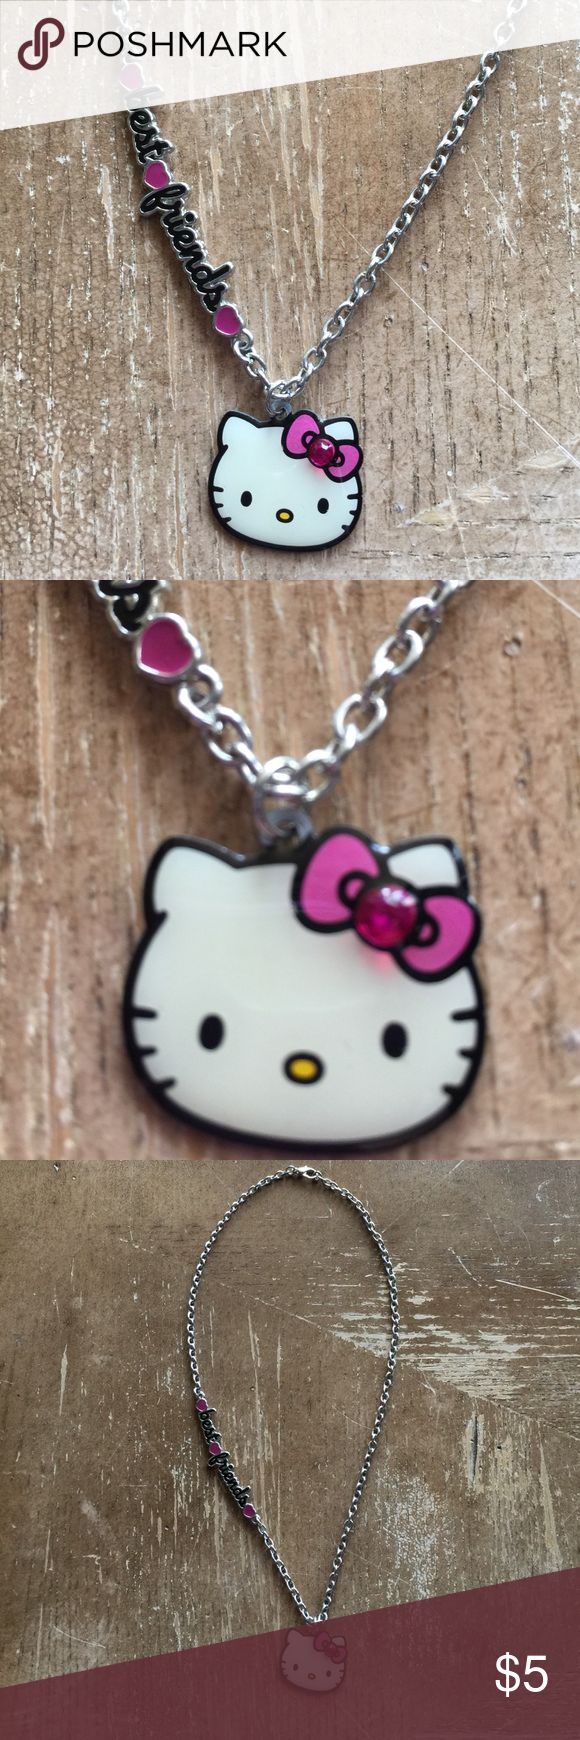 Necklace Hello kitty ❤️ Necklace Hello Kitty ❤️ Hello Kitty Jewelry Necklaces